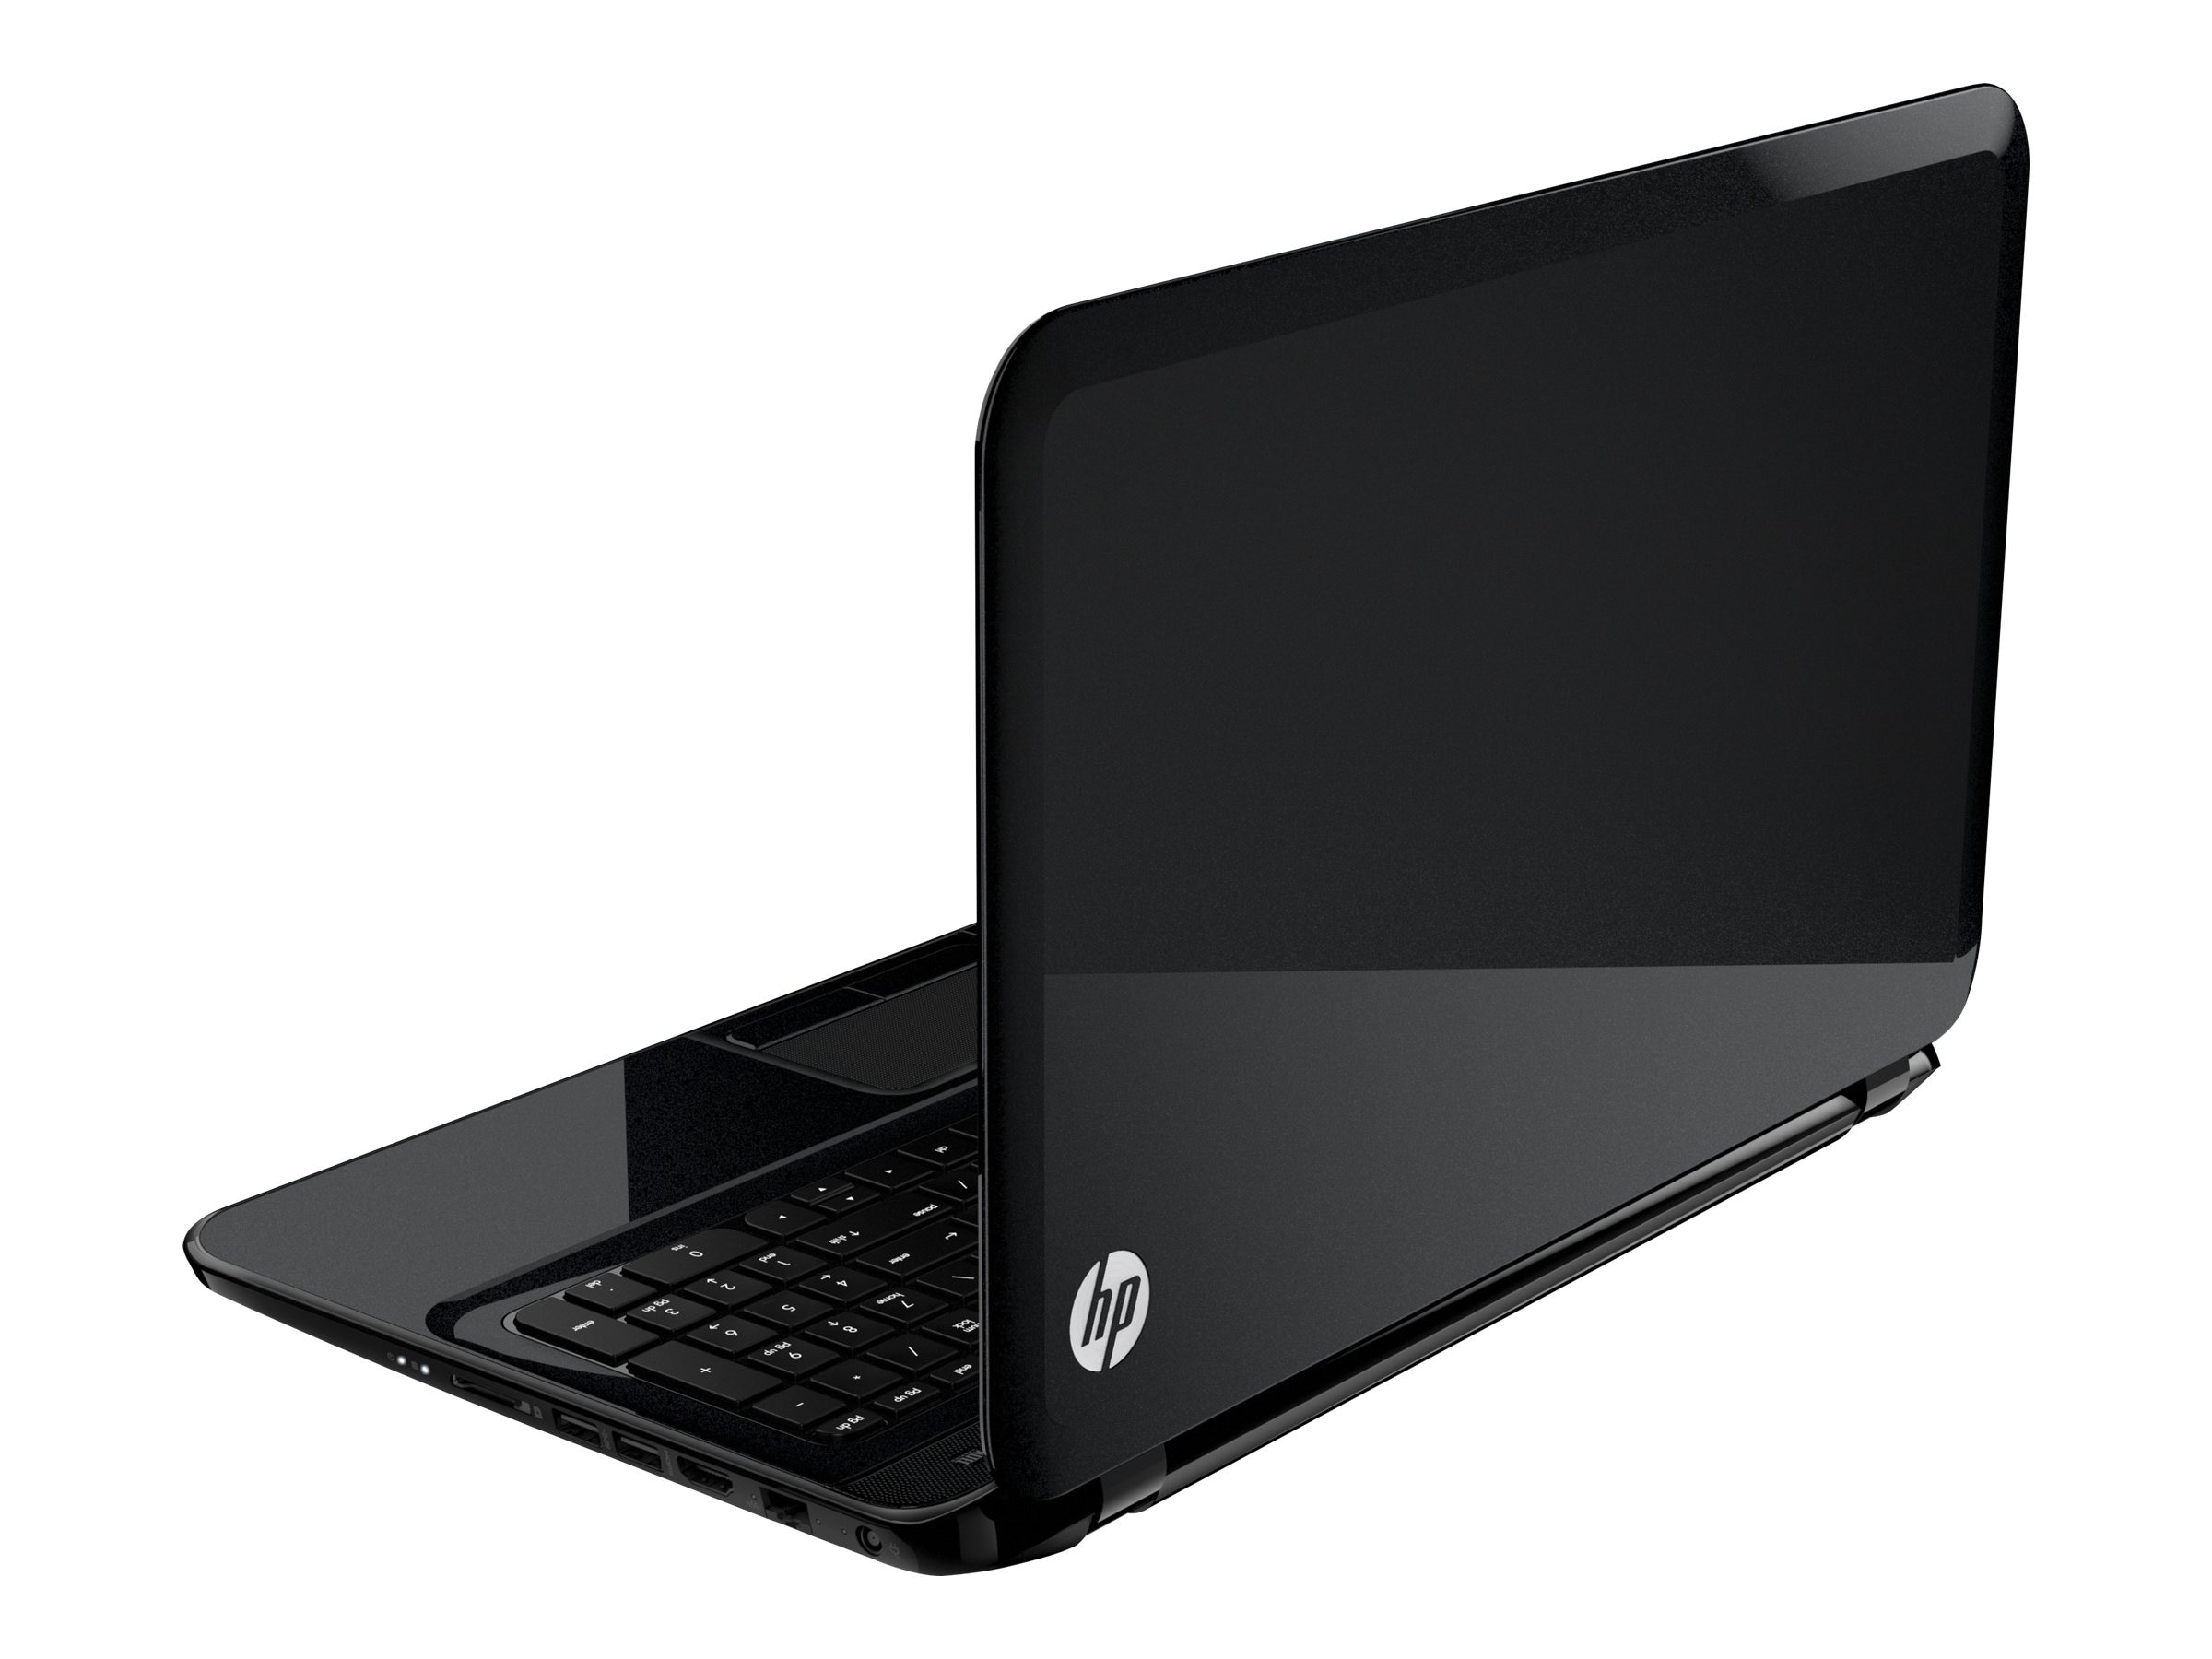 HP Pavilion 15-B010us SleekBook : 1.5GHz Core i3 15.6in display